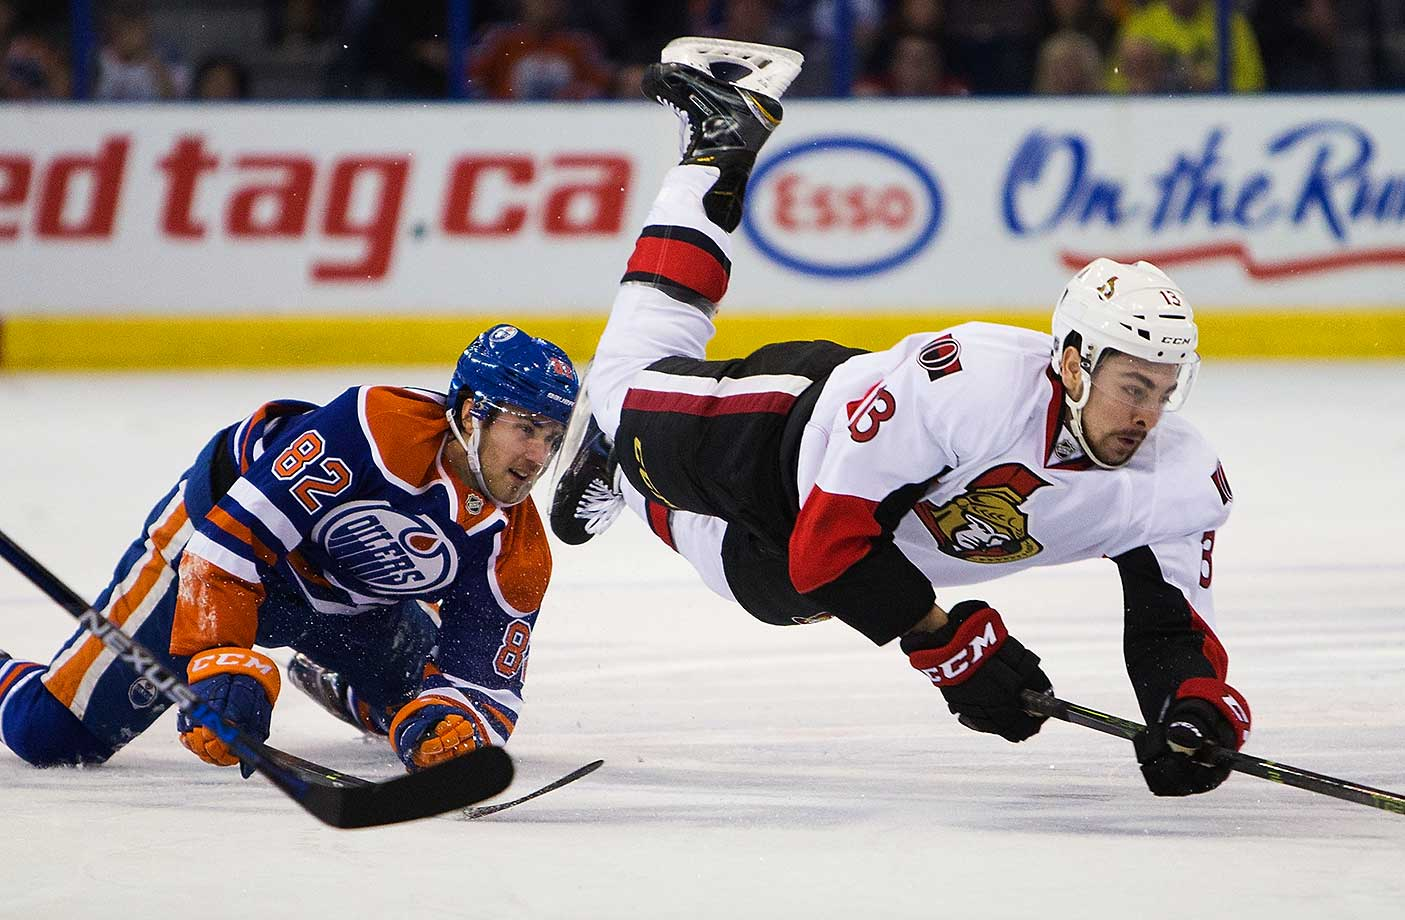 Jordan Oesterle of the Edmonton Oilers trips up Nick Paul of the Ottawa Senators.